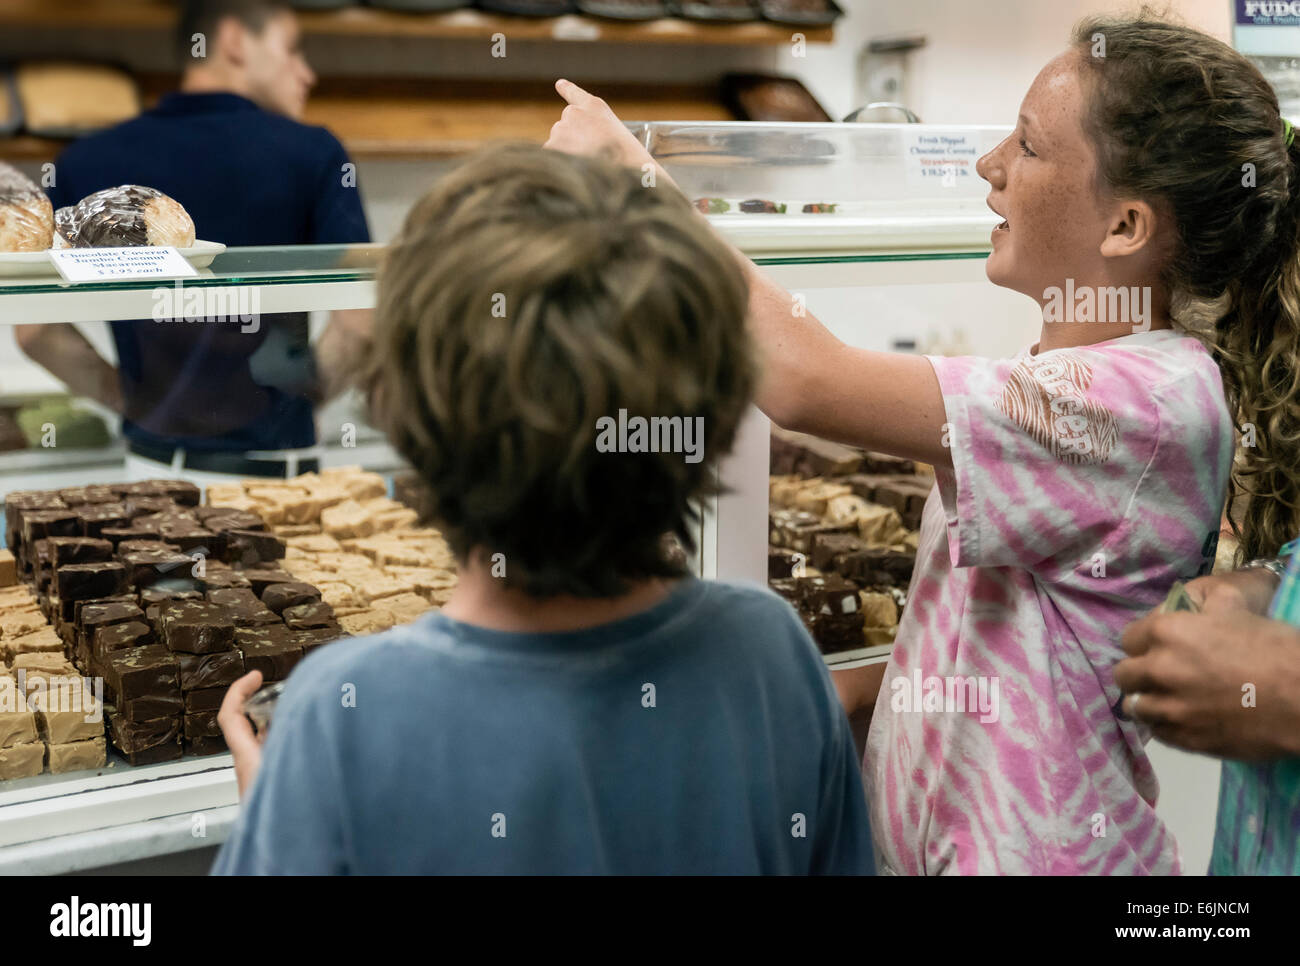 Kids making a selection in a fudge shop. - Stock Image